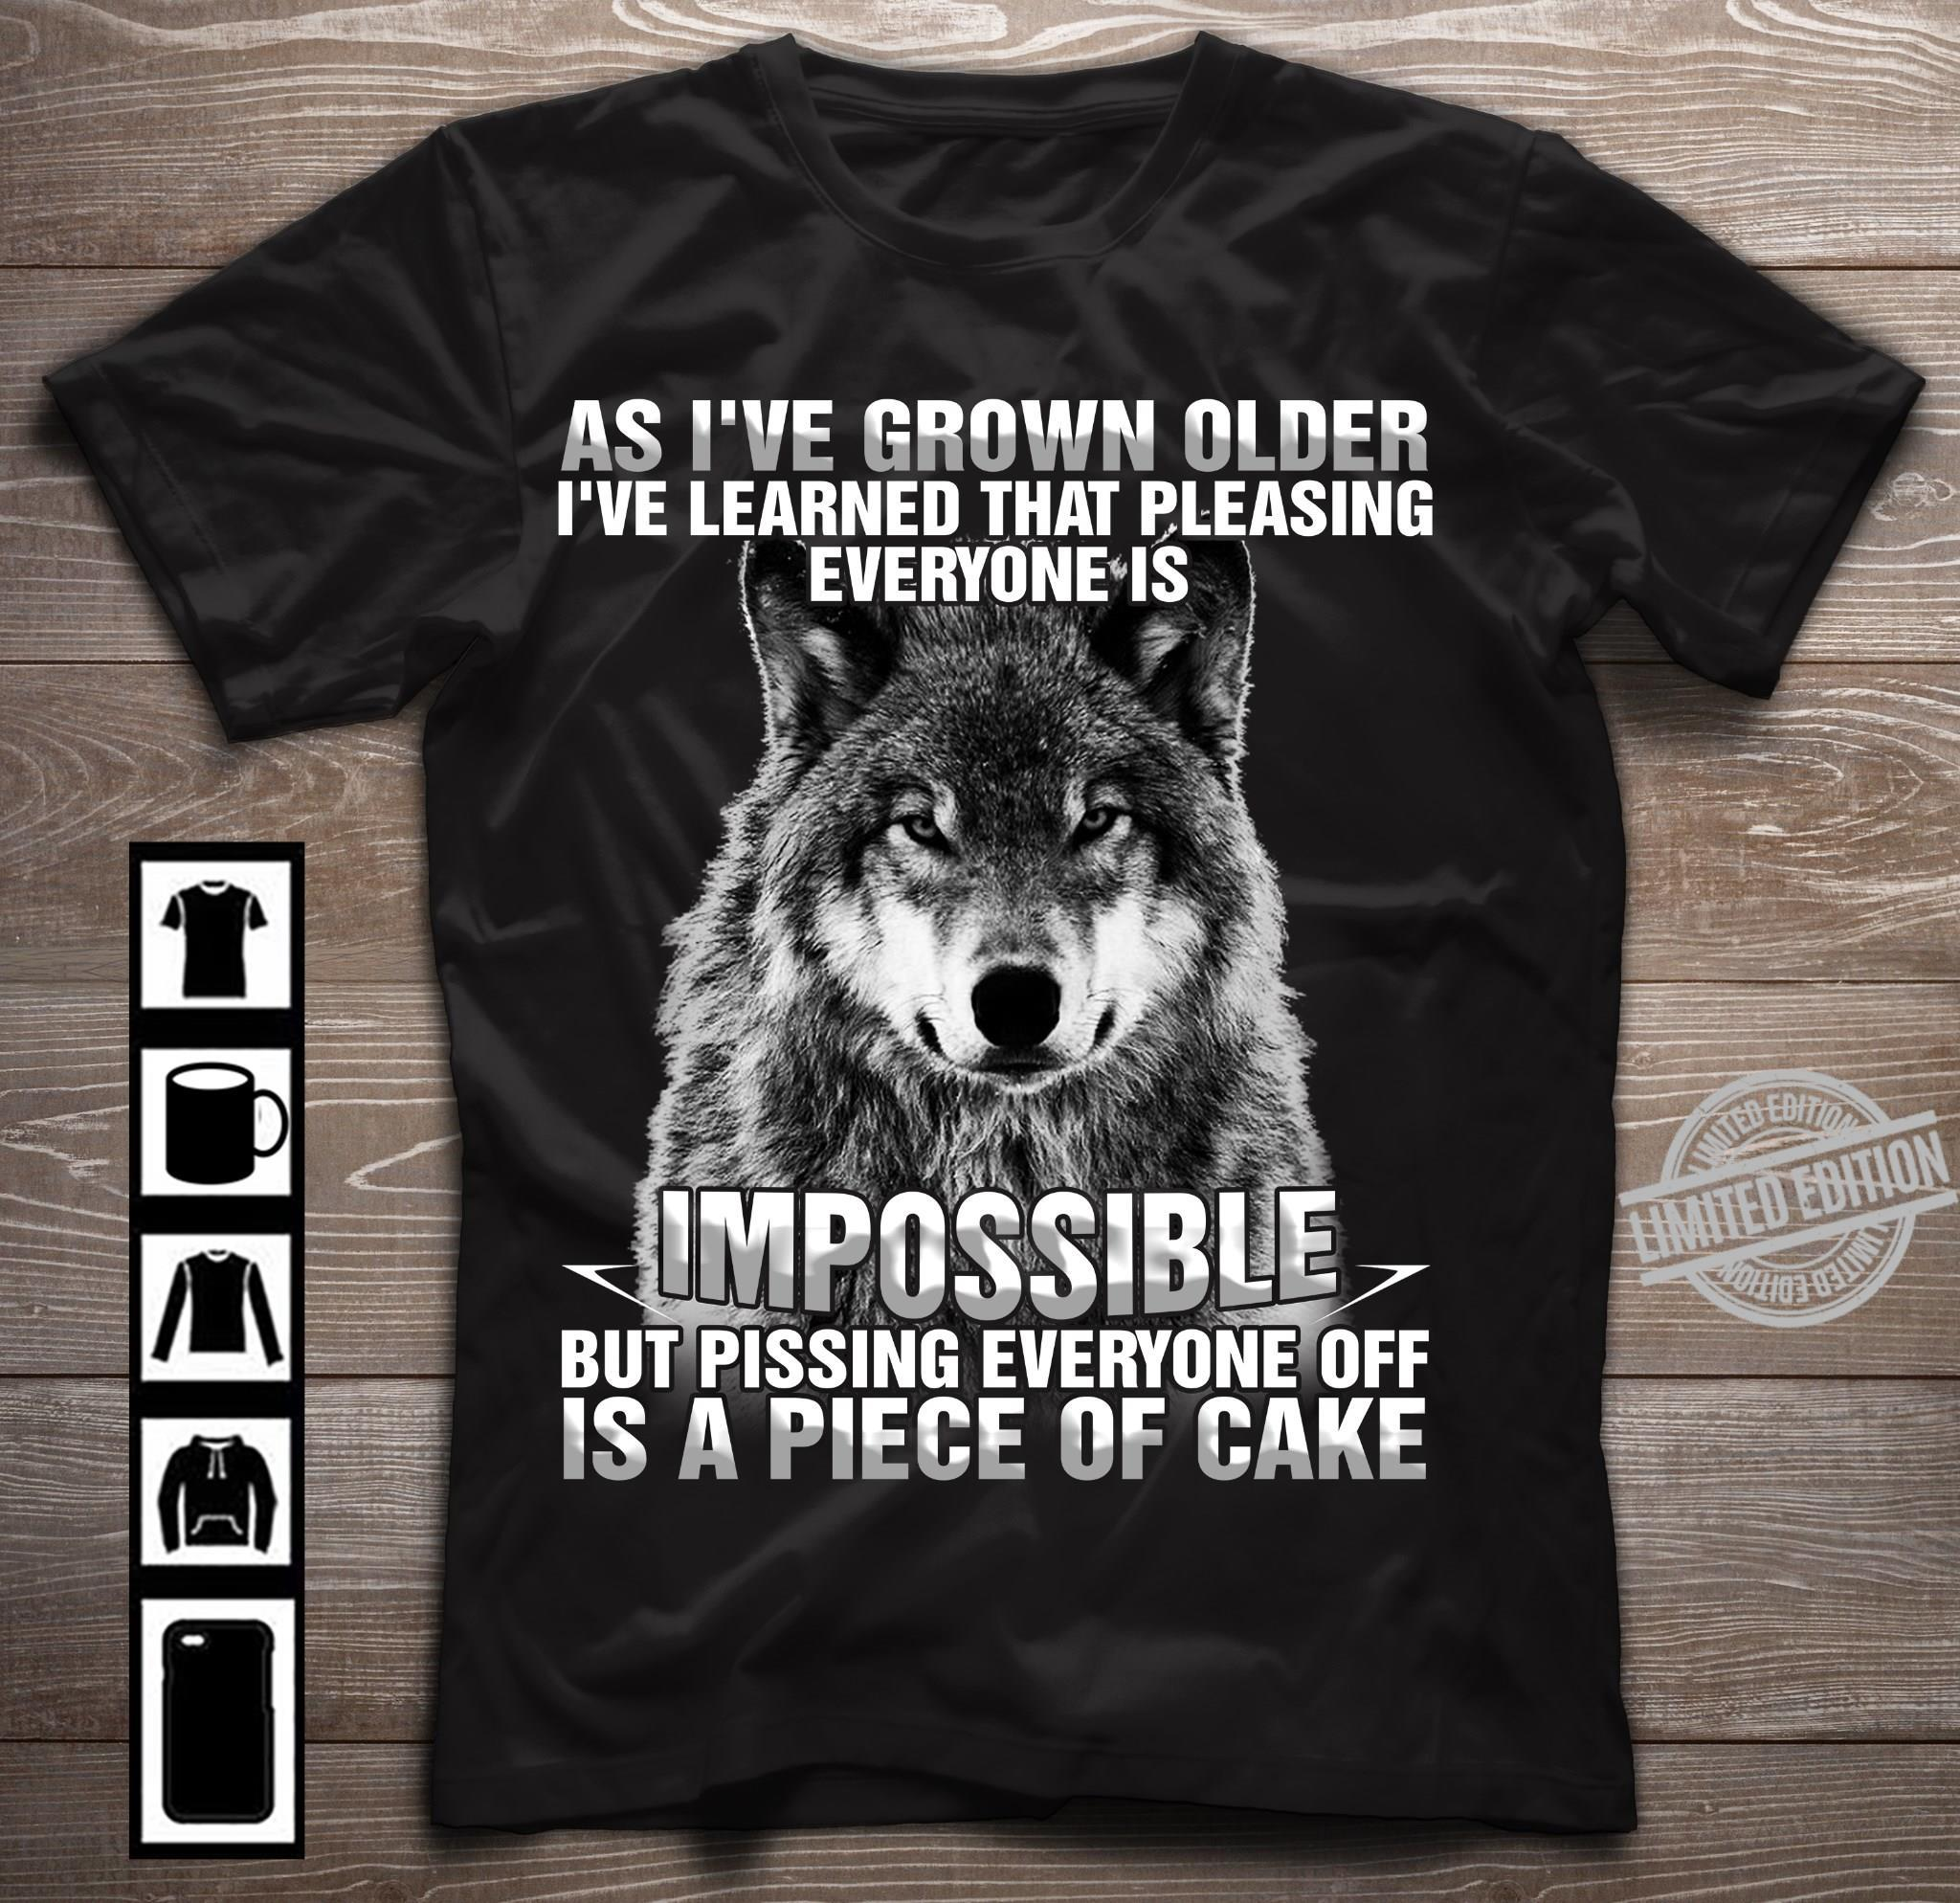 As I've Grown Older I've Learned That Pleasing Everyone Is Impossible Is A Piece Of Cake Shirt